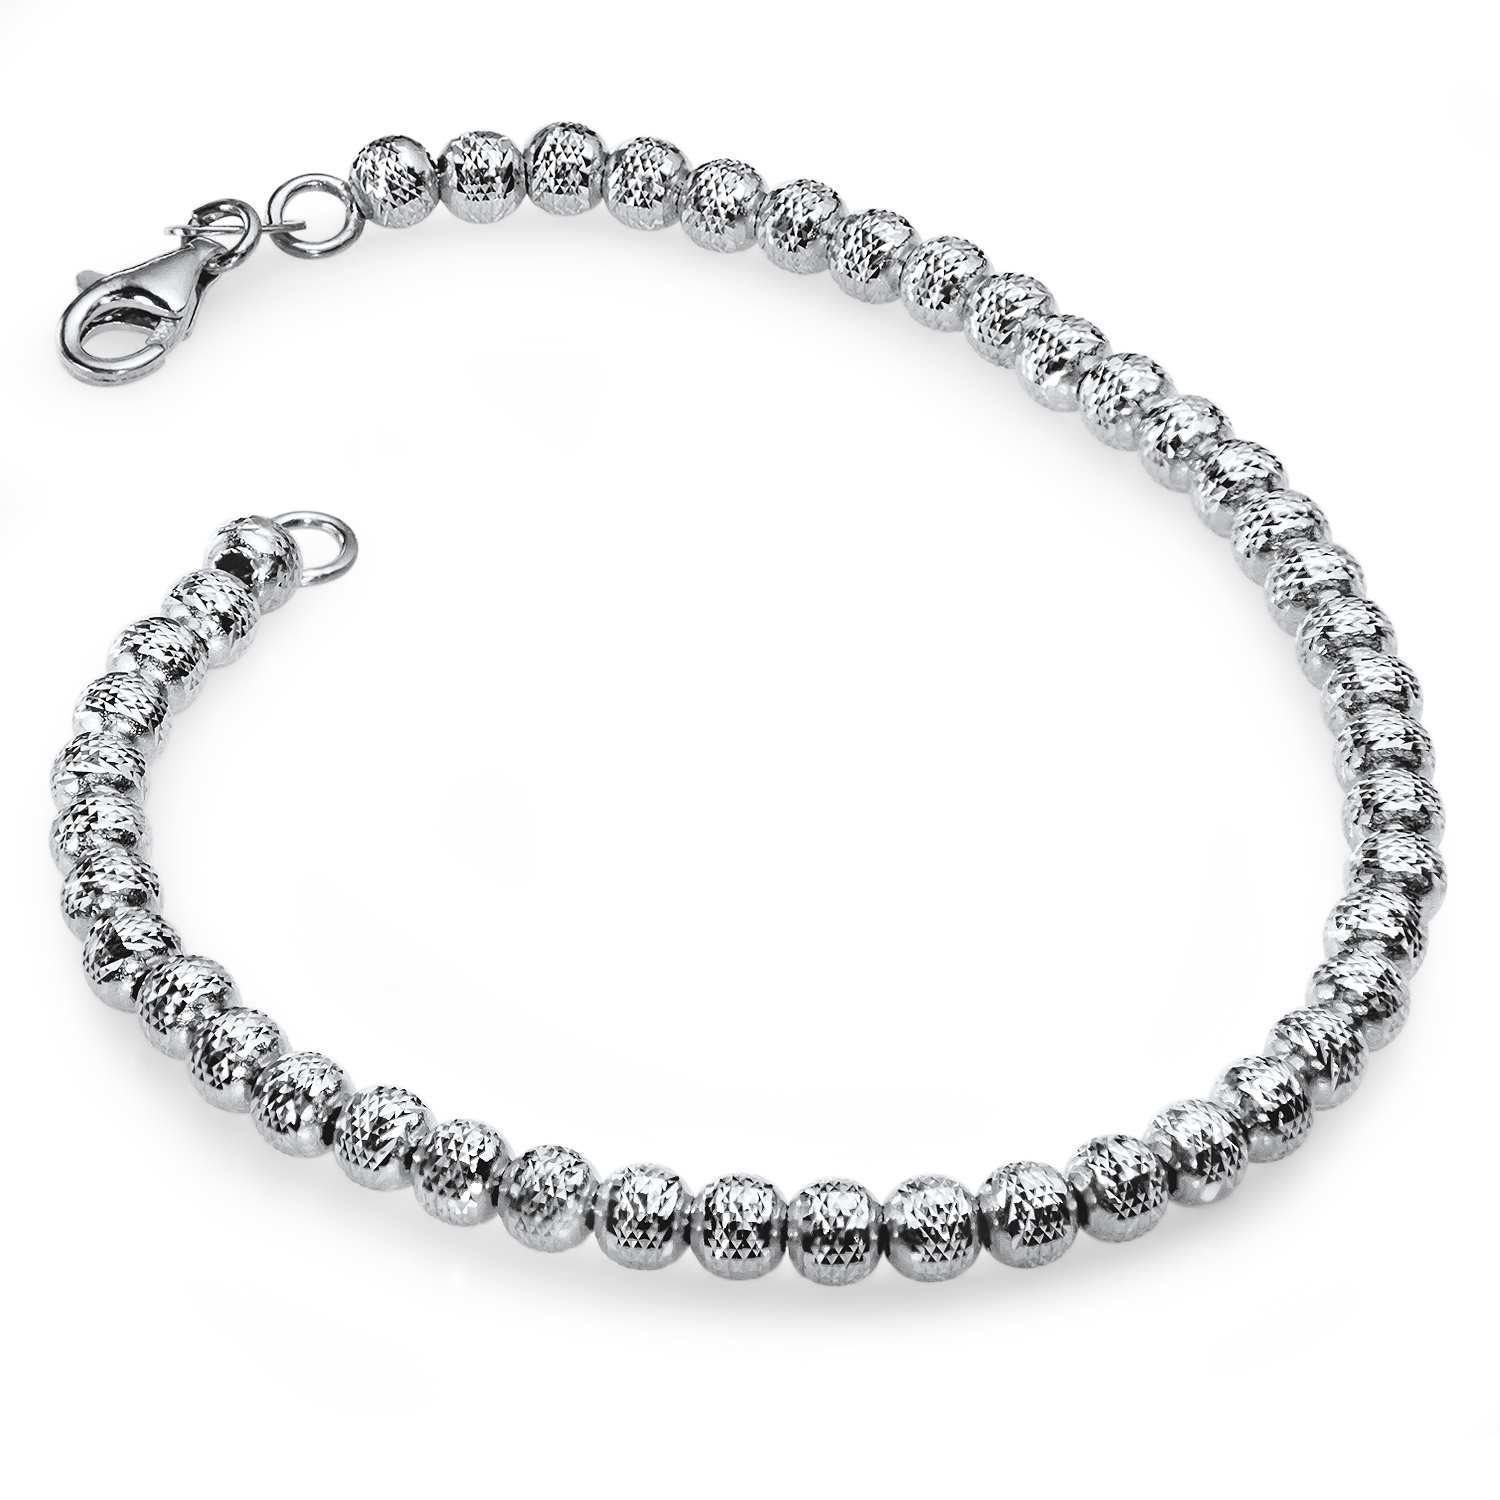 14k White Gold Diamond-Cut Beaded Bracelet